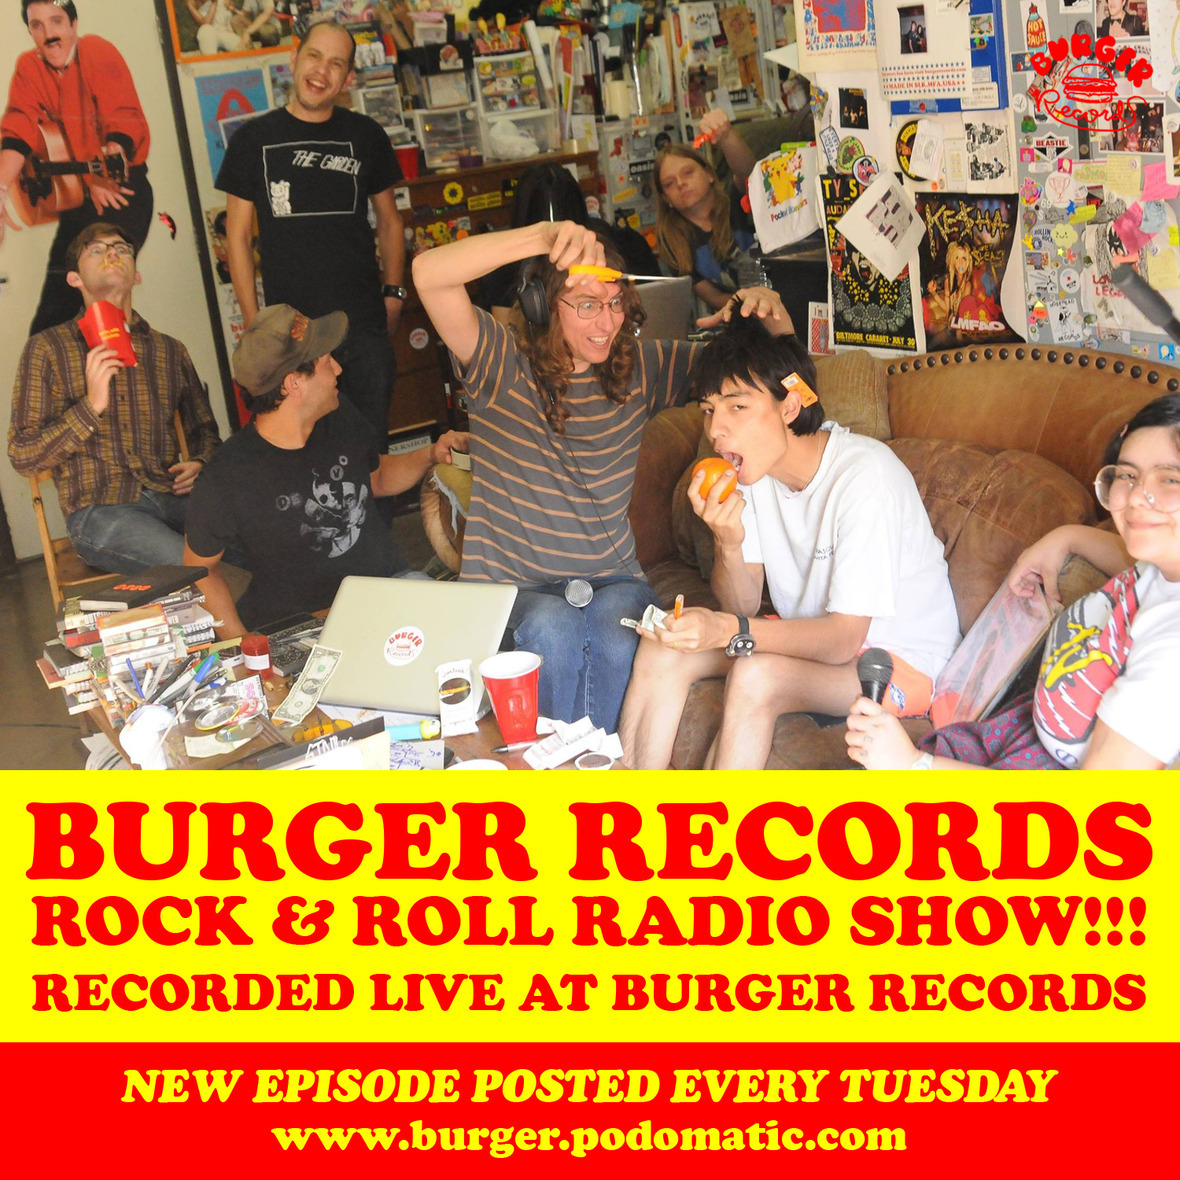 ROCK N ROLL RADIO SHOW COVER21